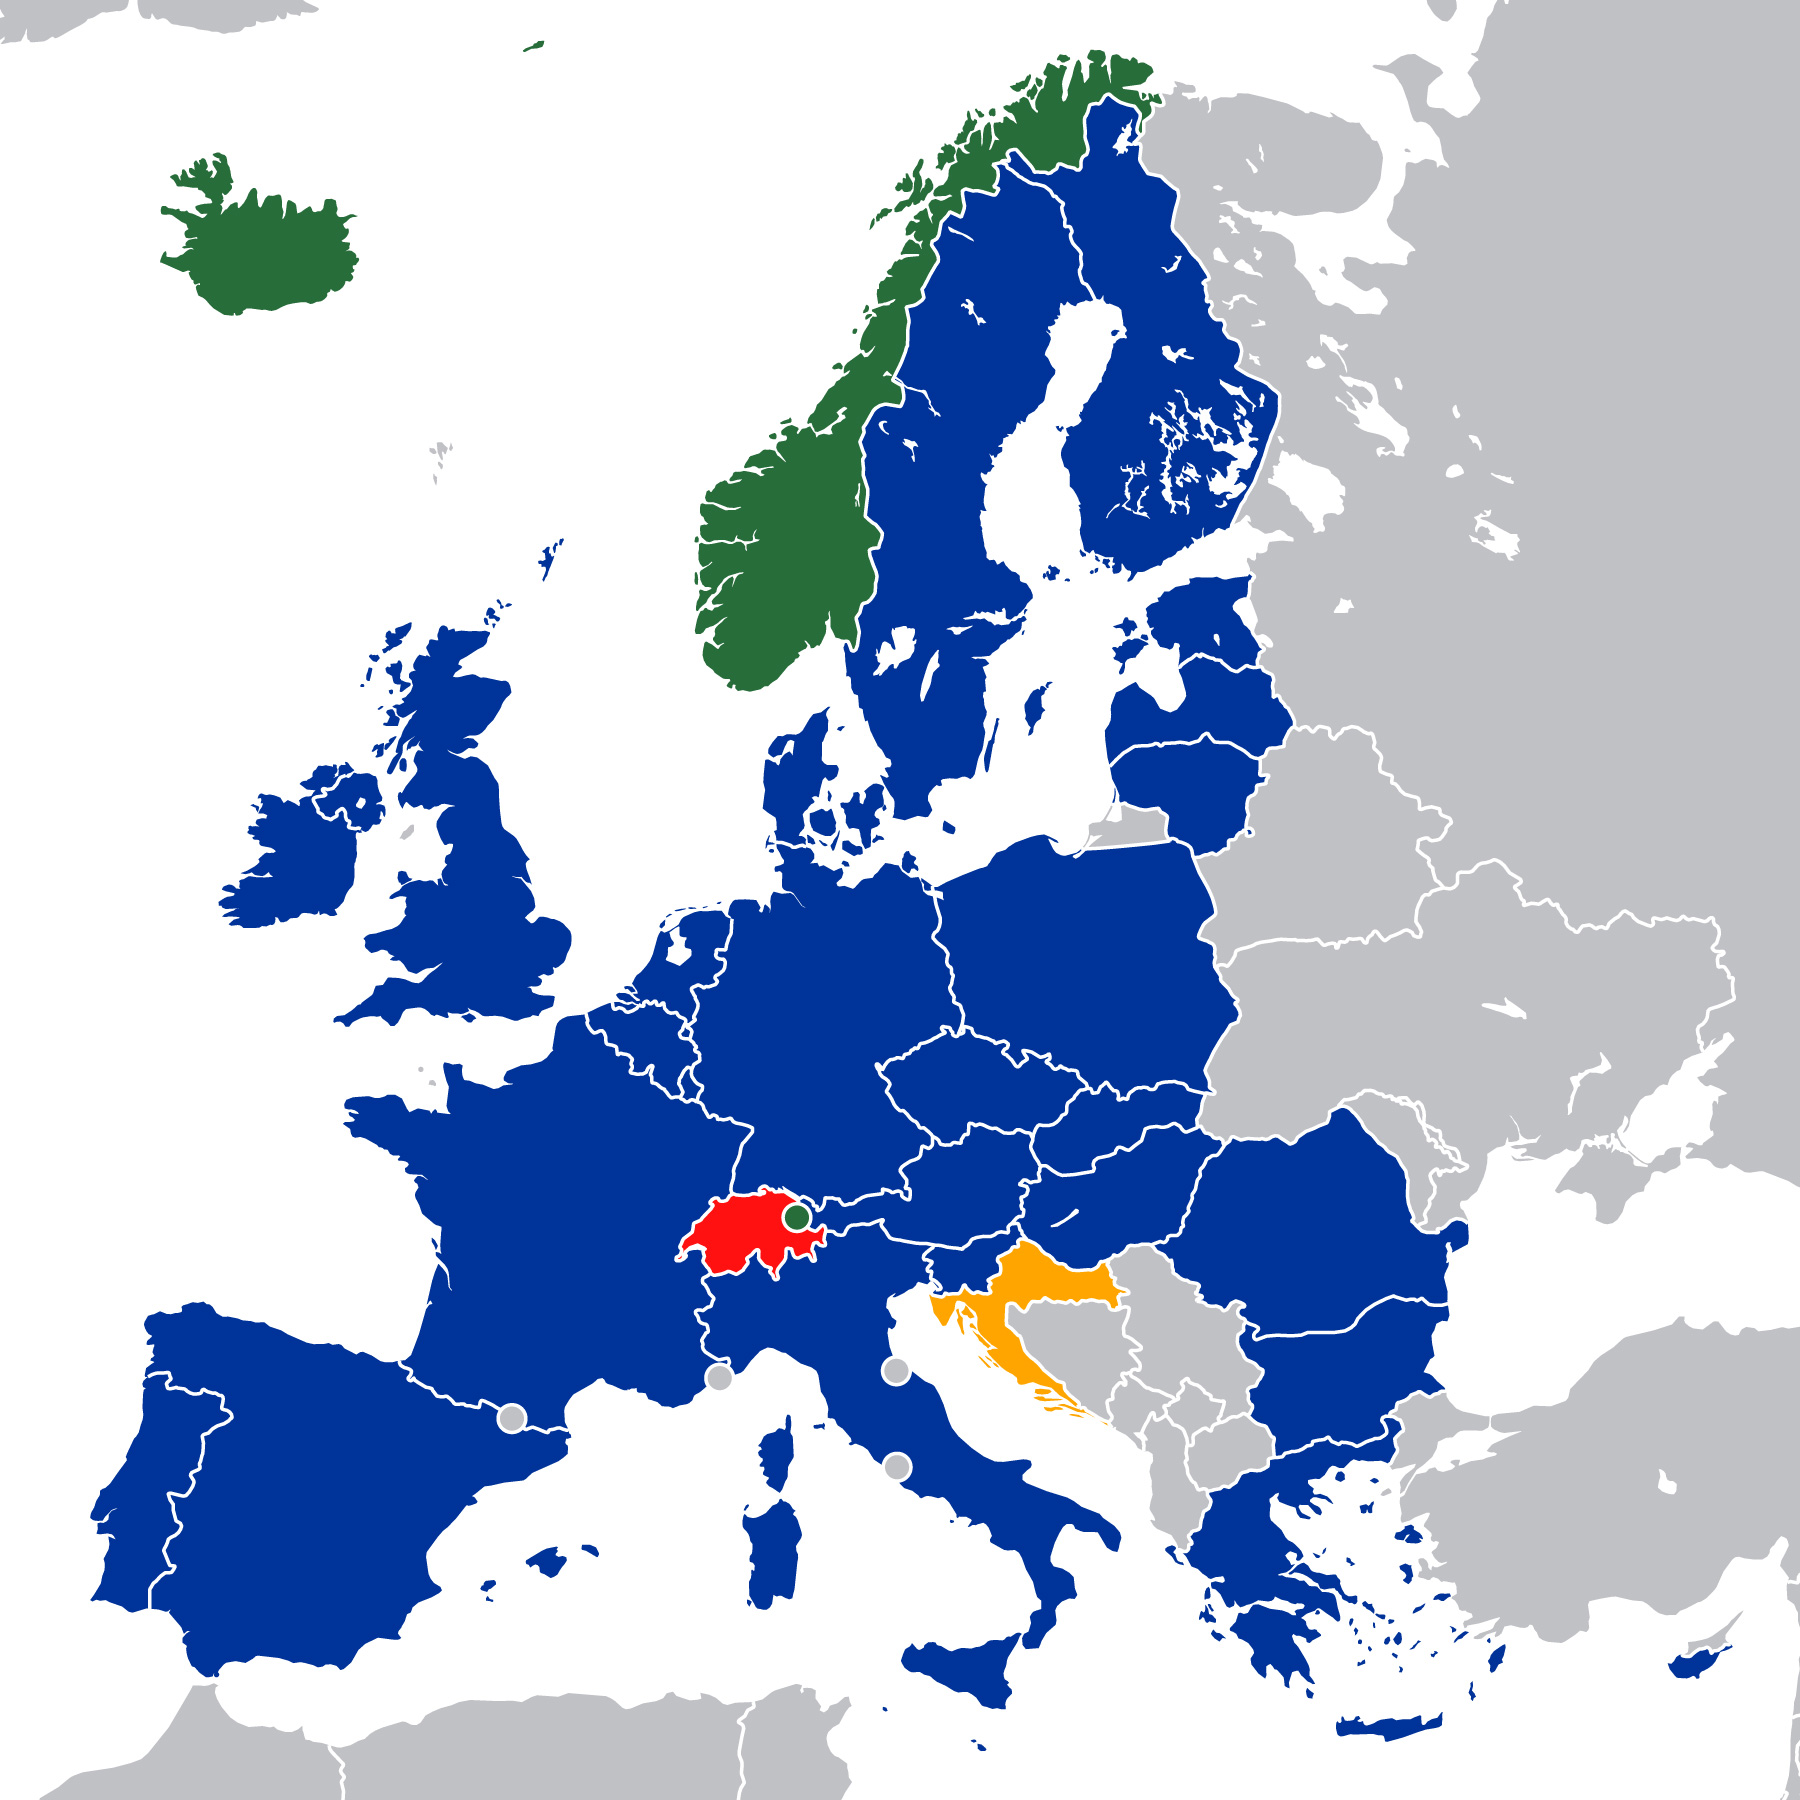 click to enlarge   Credit: By European Economic Area.svg: Kolja21, Fry1989derivative work: Danlaycock - European Economic Area.svg, CC BY-SA 2.5, https://commons.wikimedia.org/w/index.php?curid=32132627